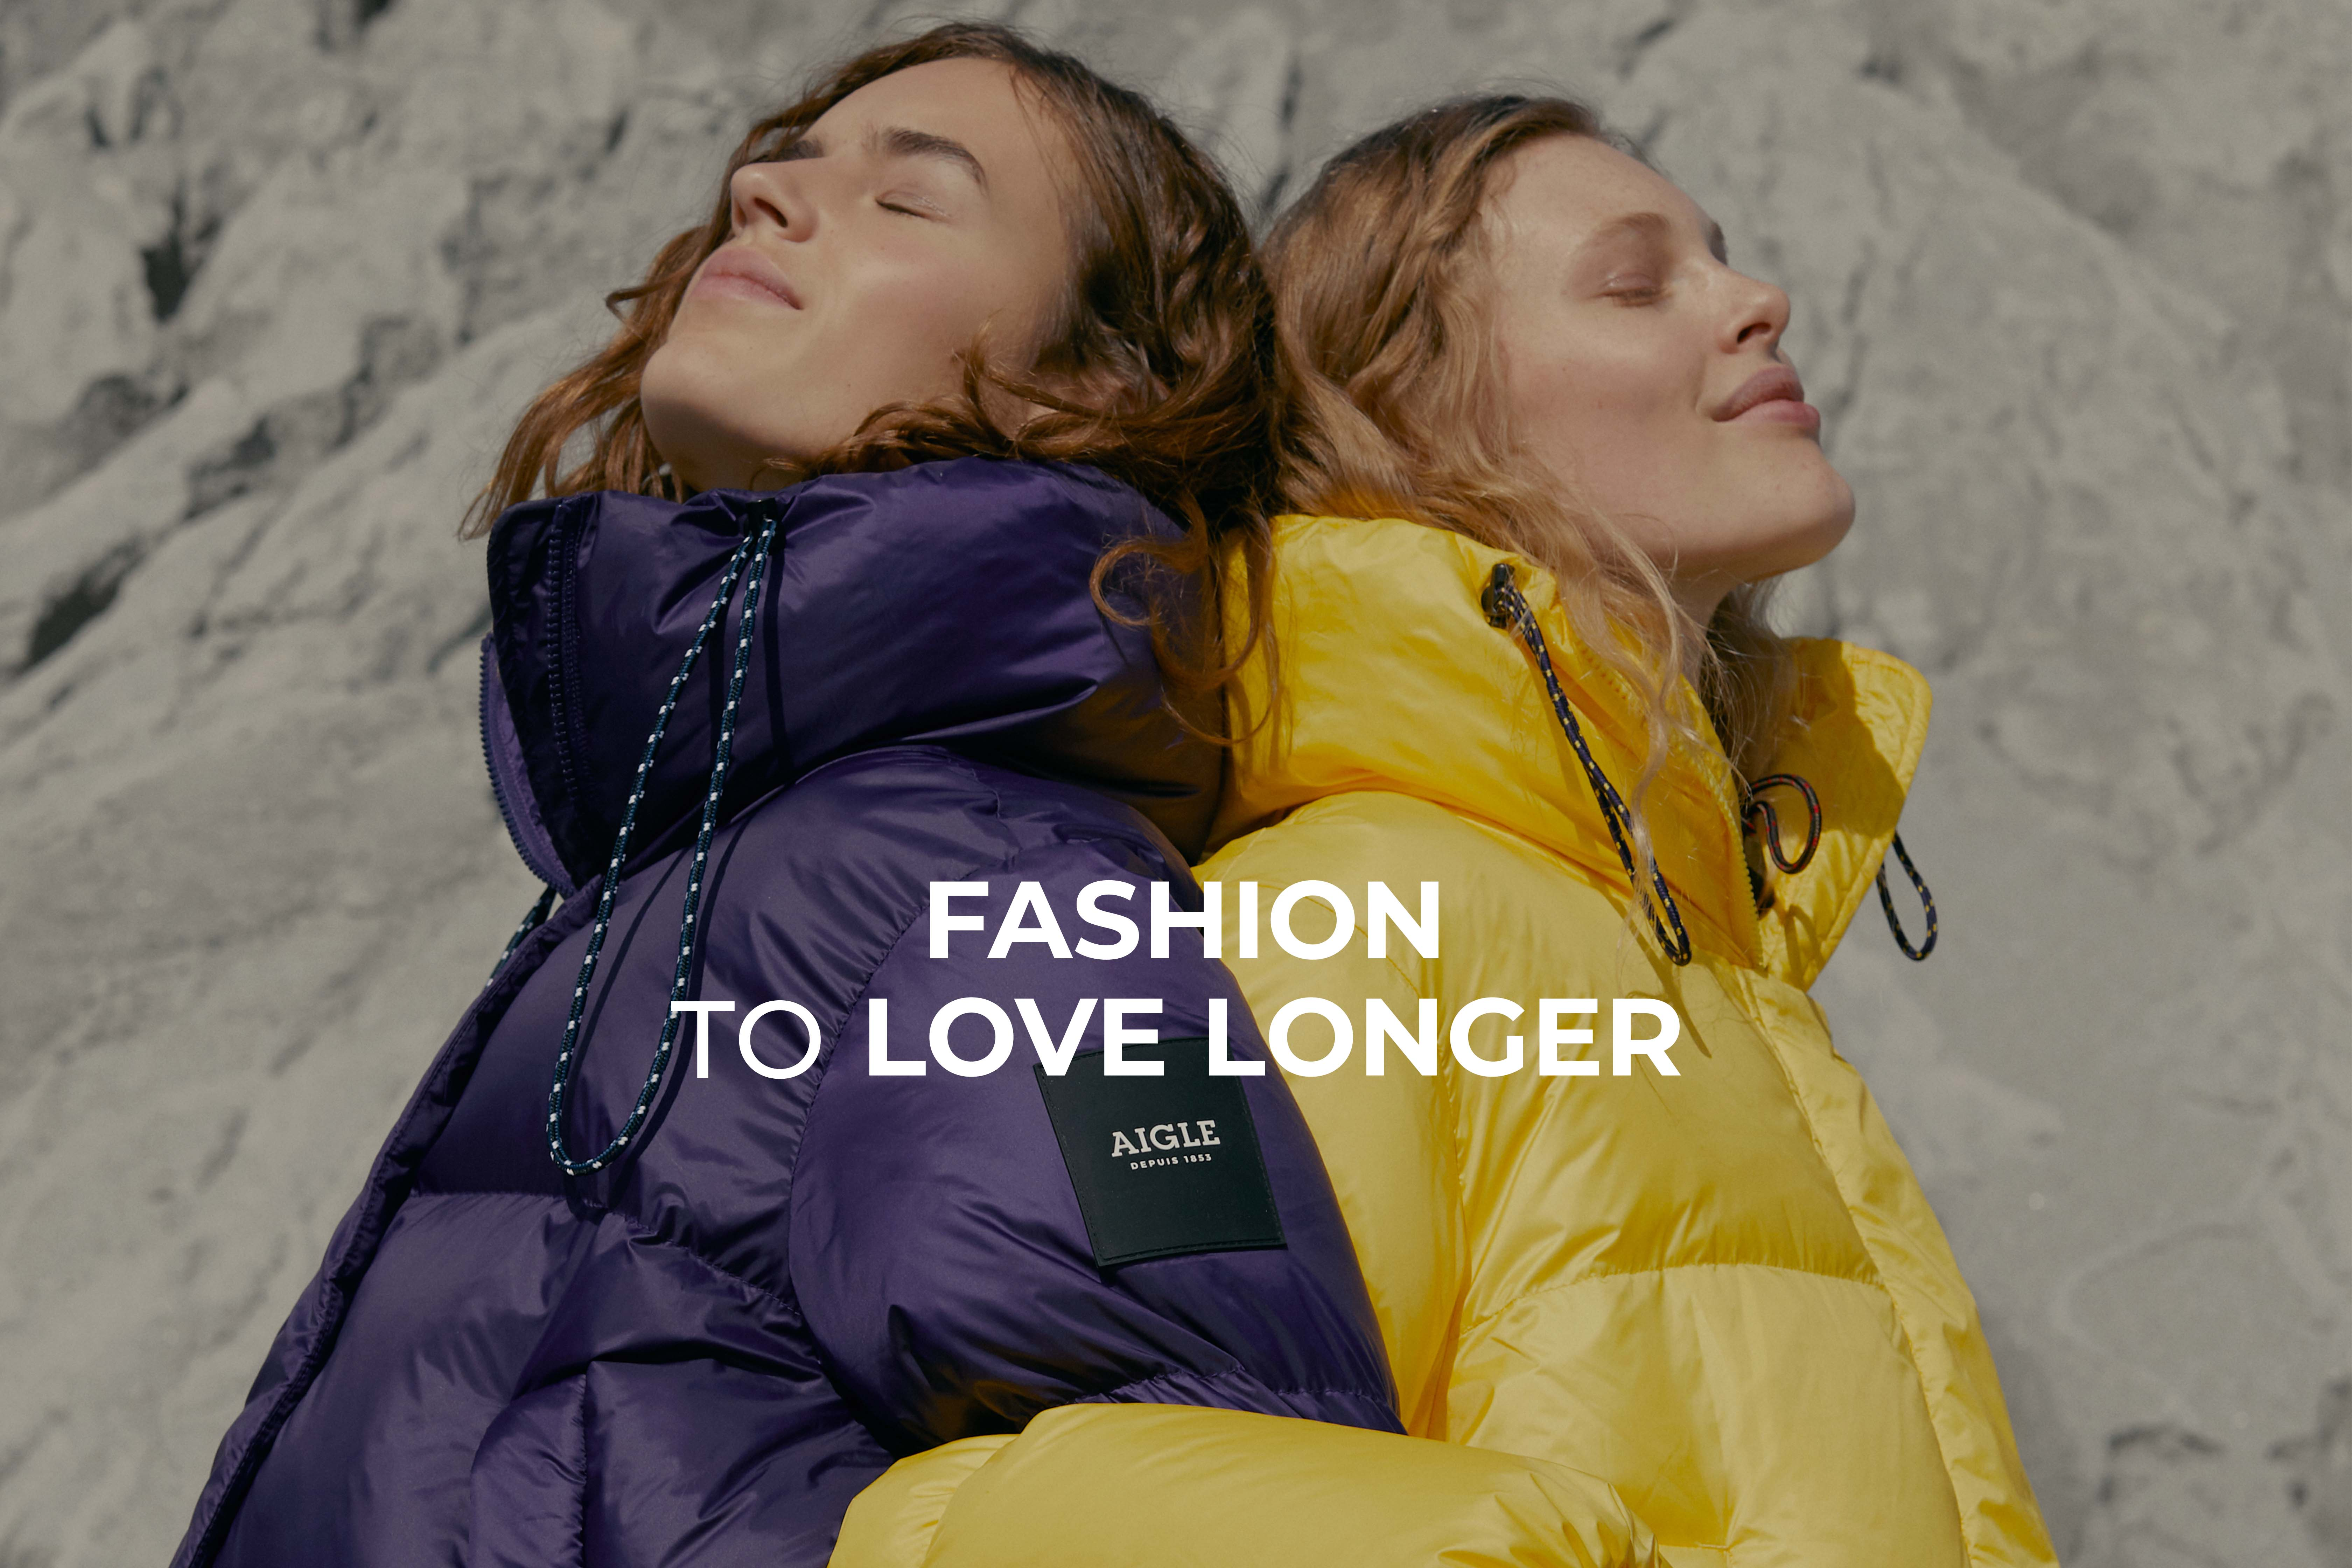 AIGLE STANDS THE TEST OF TIME - FASHION TO LOVE LONGER